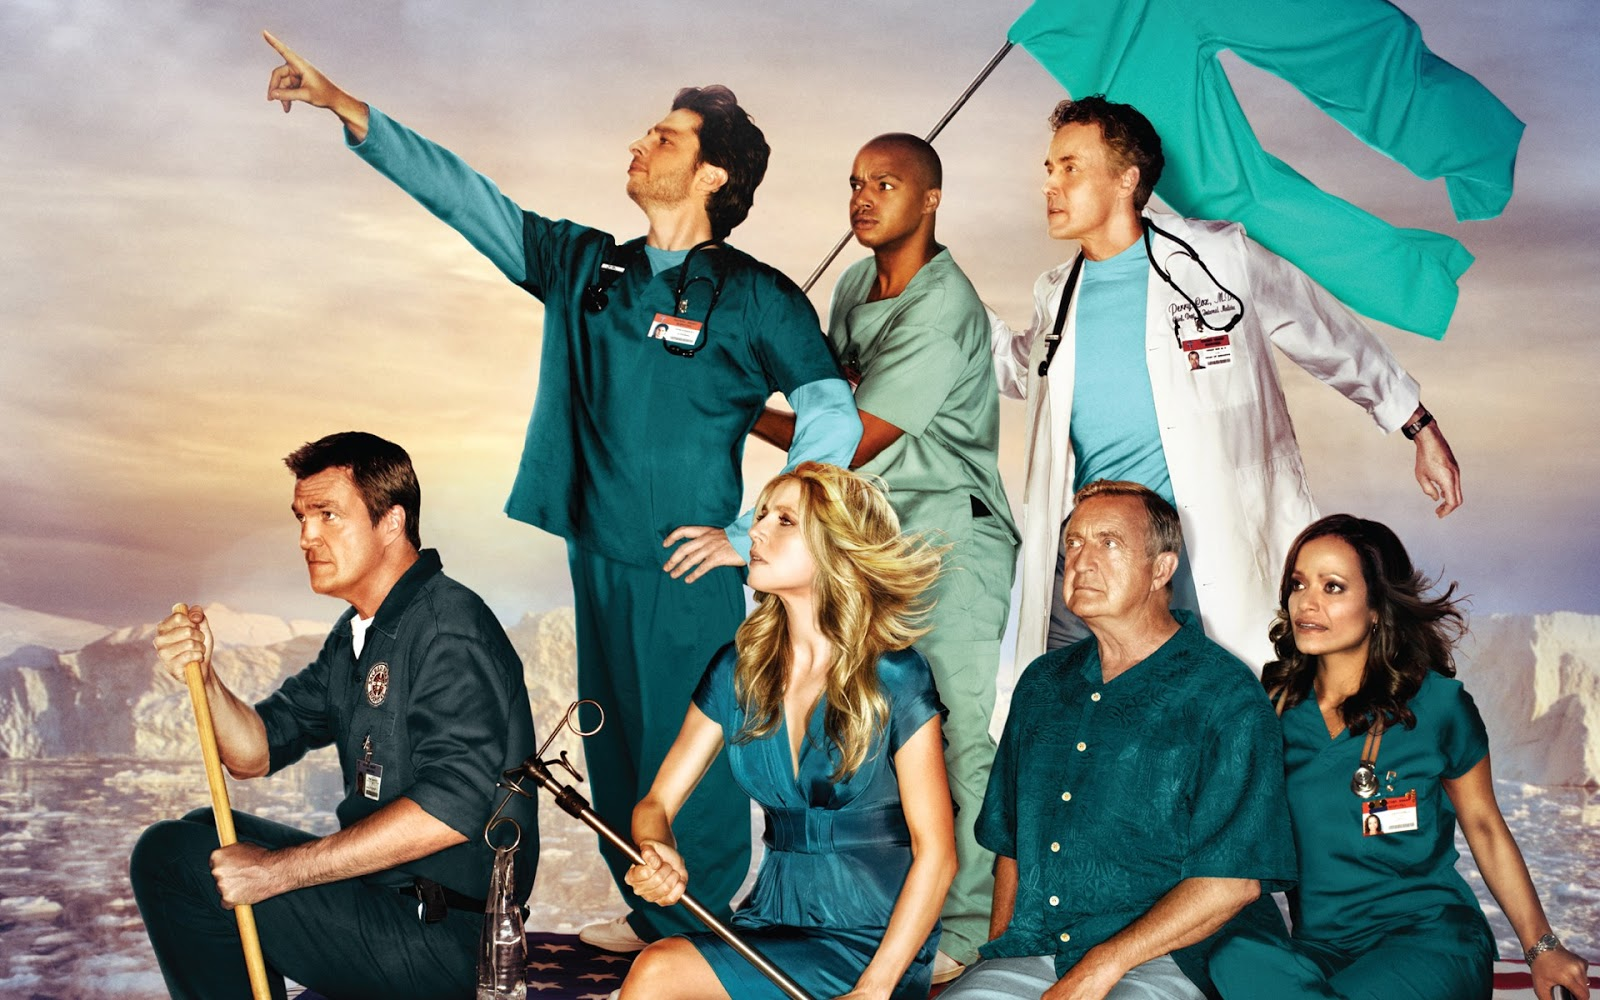 Formidable Joy - UK Fashion, Beauty & Lifestyle Blog | TV | 10 Reasons why I still love Scrubs; Formidable Joy; Formidable Joy Blog; Scrubs; Scrubs TV Show; Zach Braff; Donald Faison; Sarah Chalke